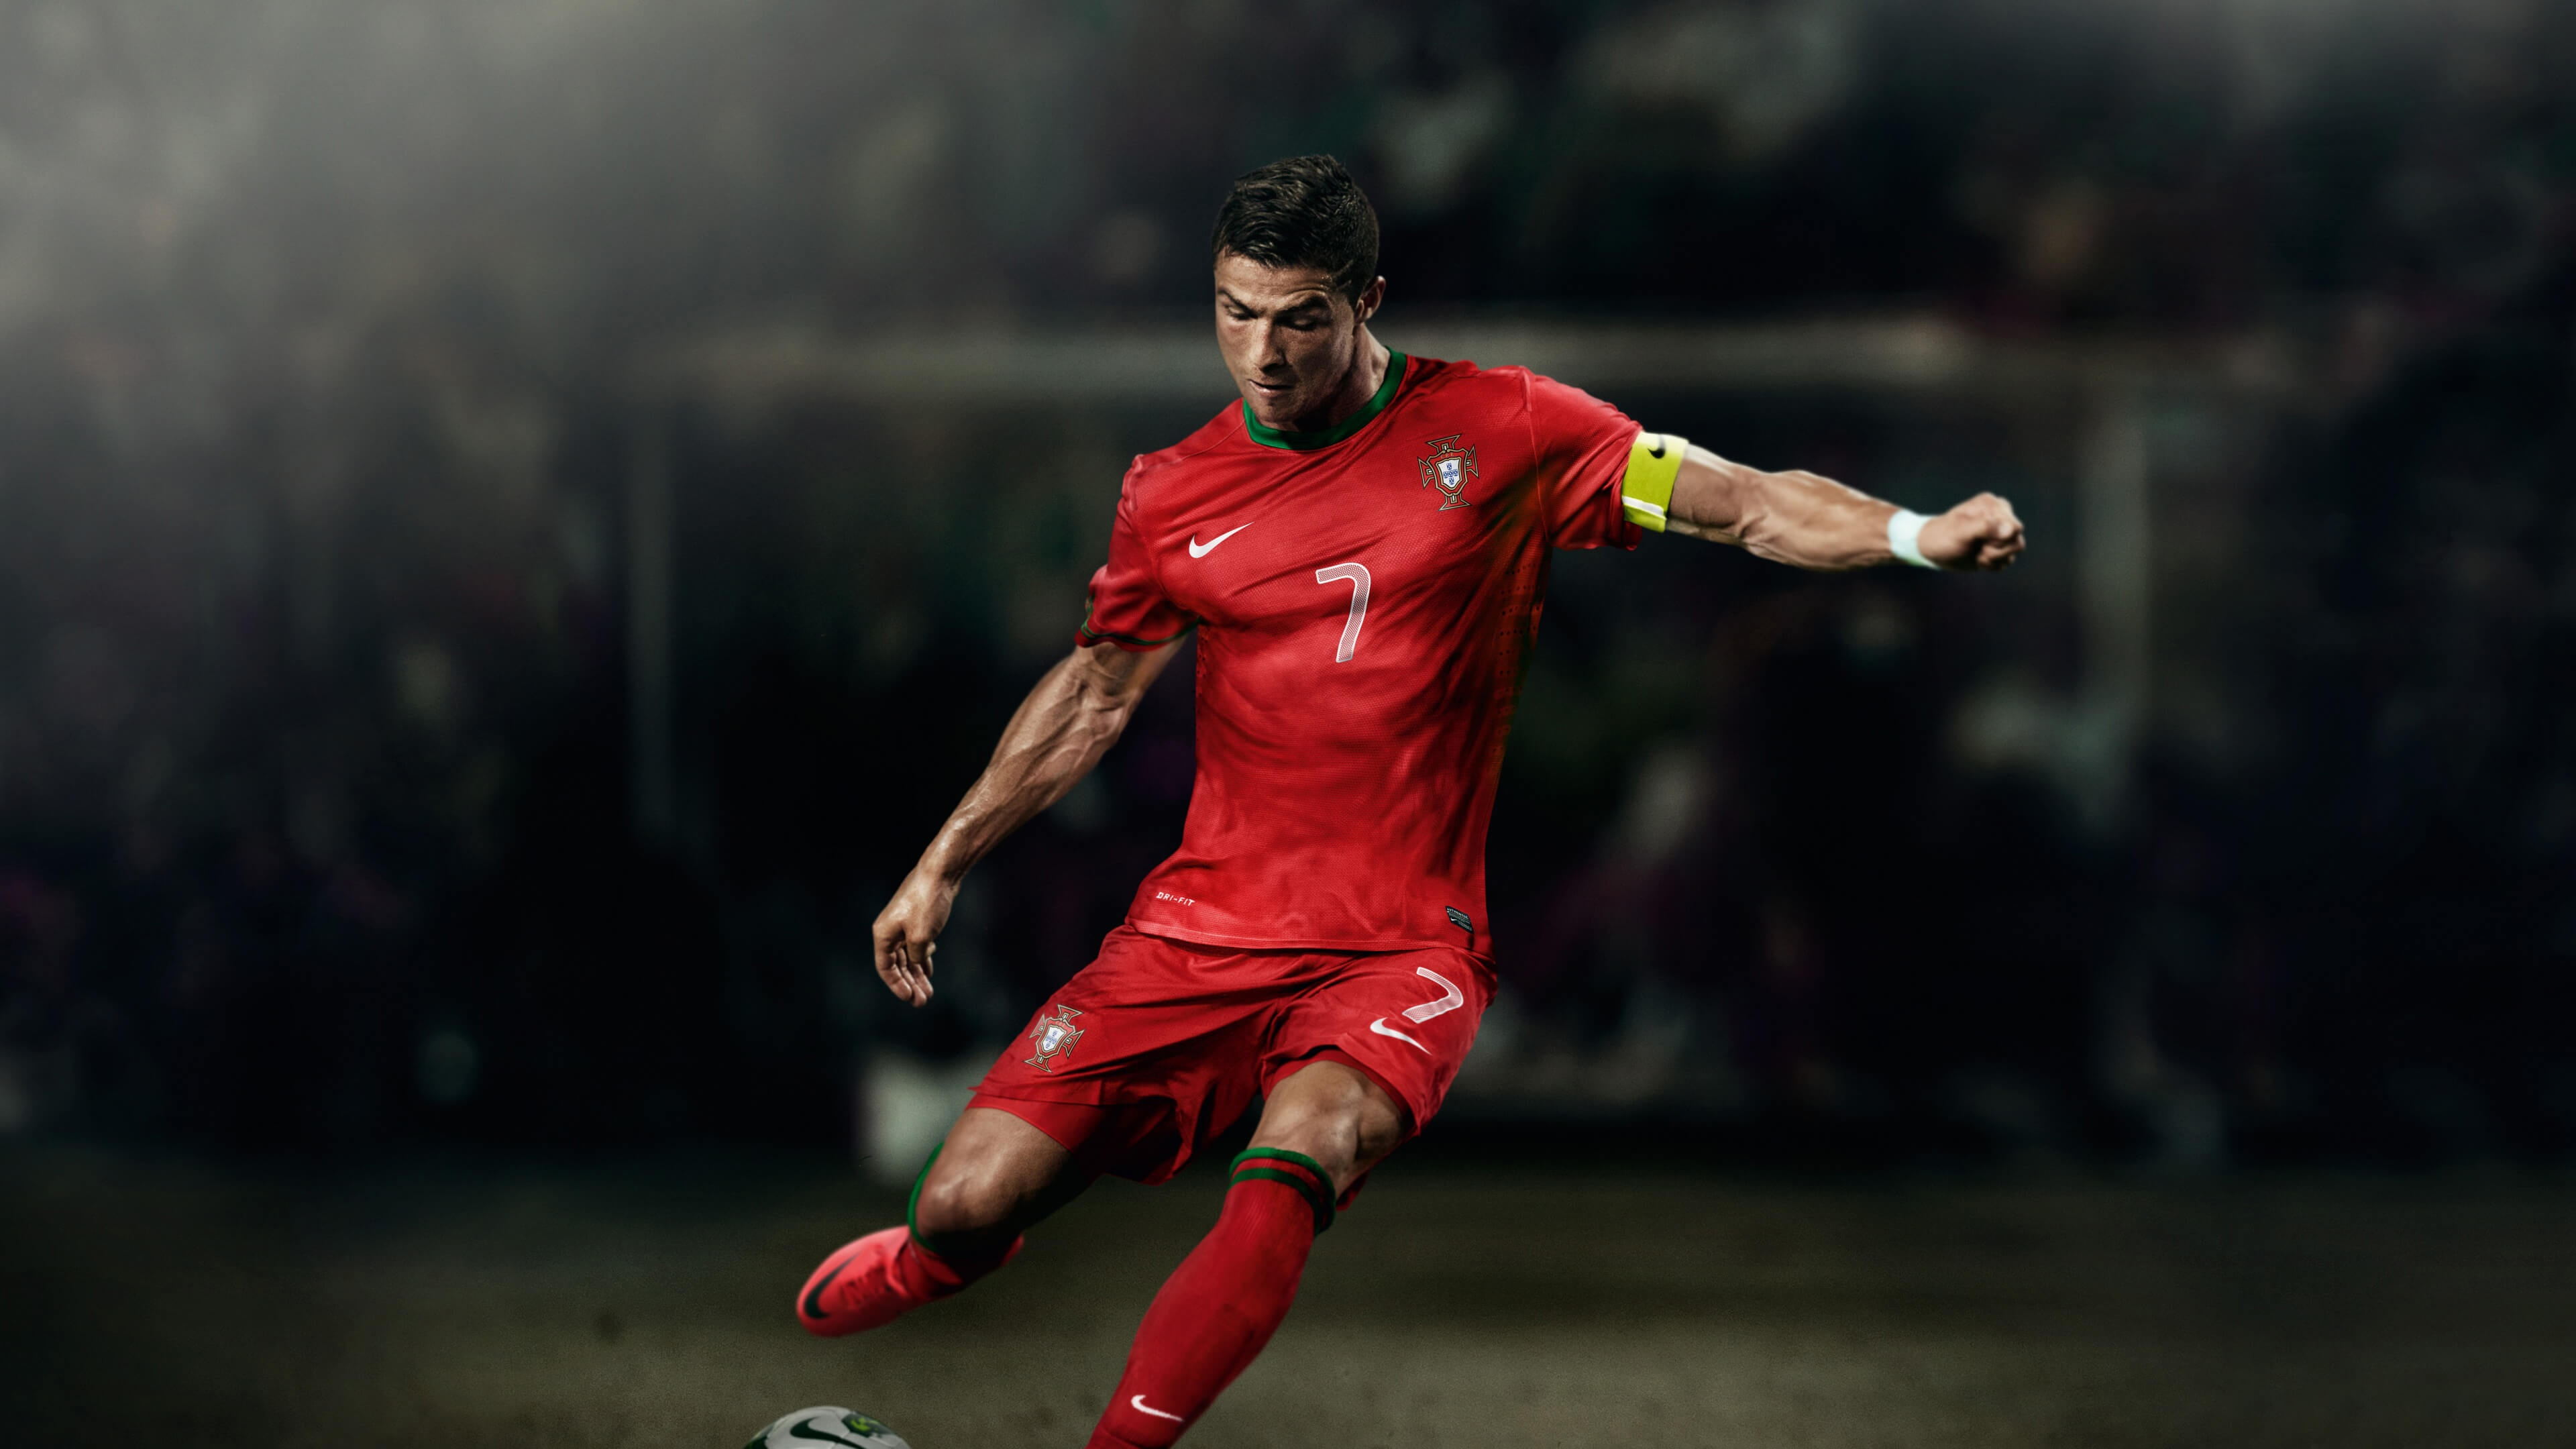 Image result for football player wallpaper